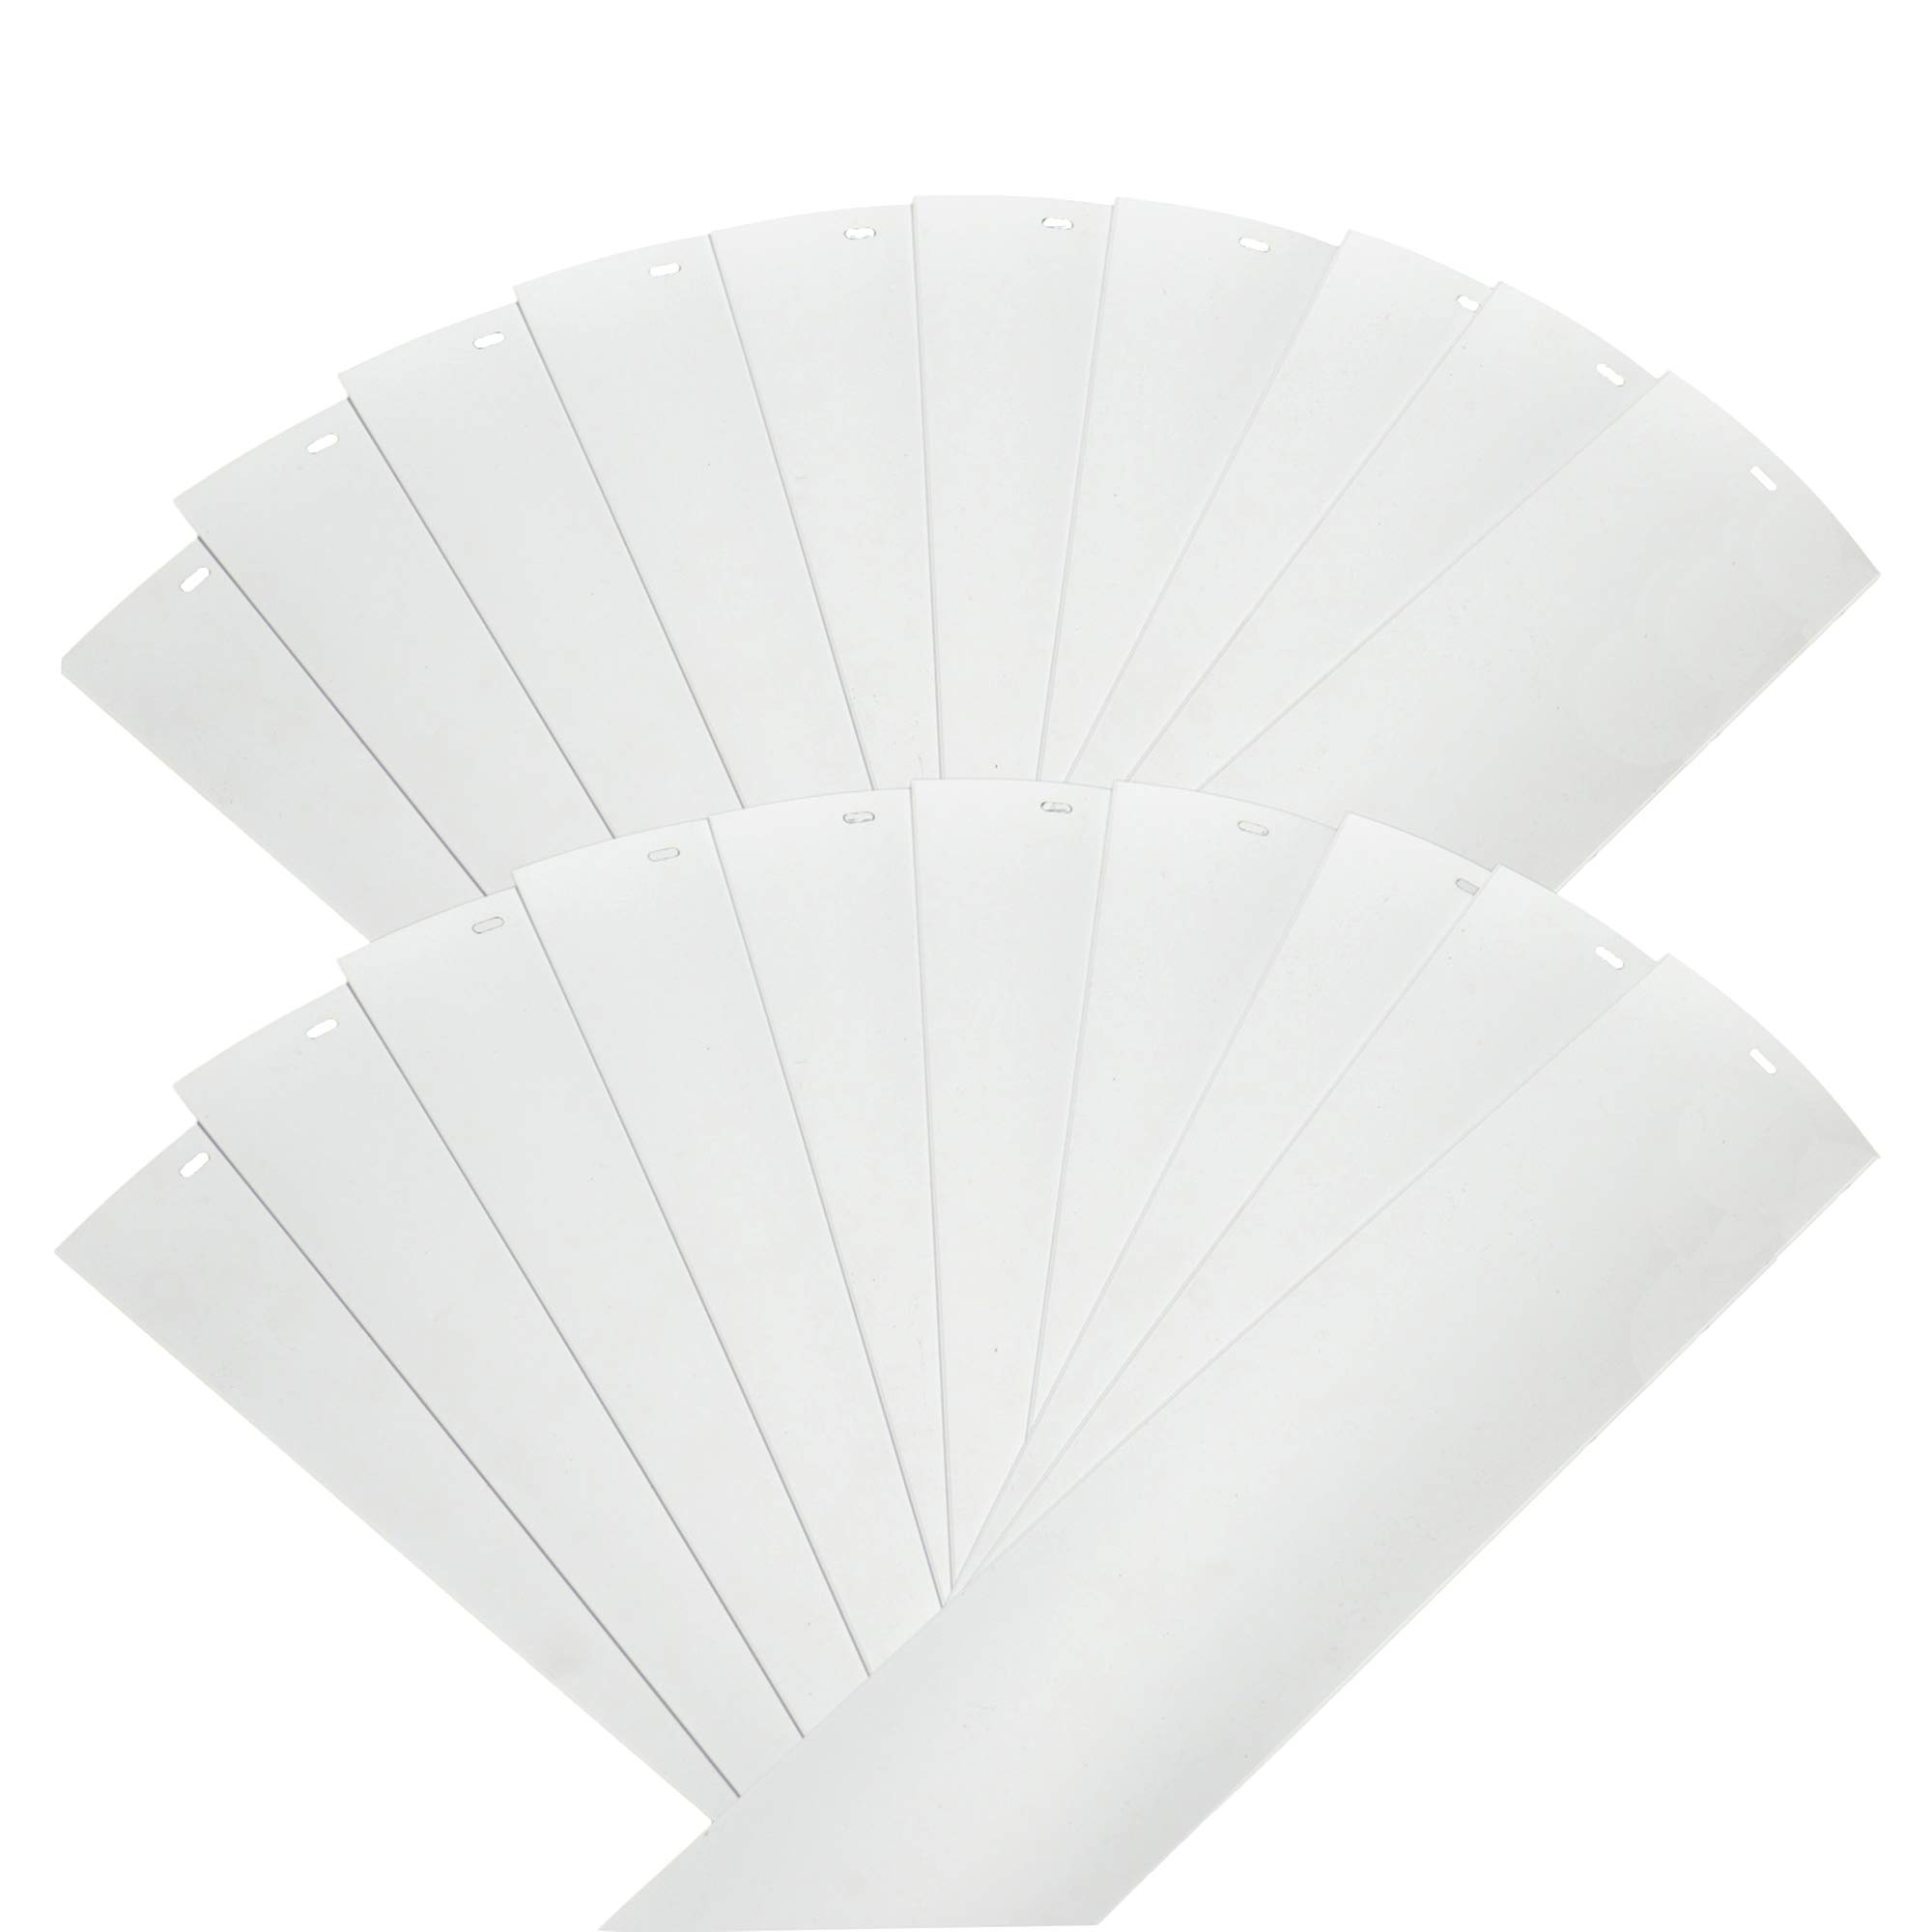 DALIX PVC Veritcal Blind Replacement Slats Curved Smooth White 94.5 x 3.5 (20-Pack) by DALIX